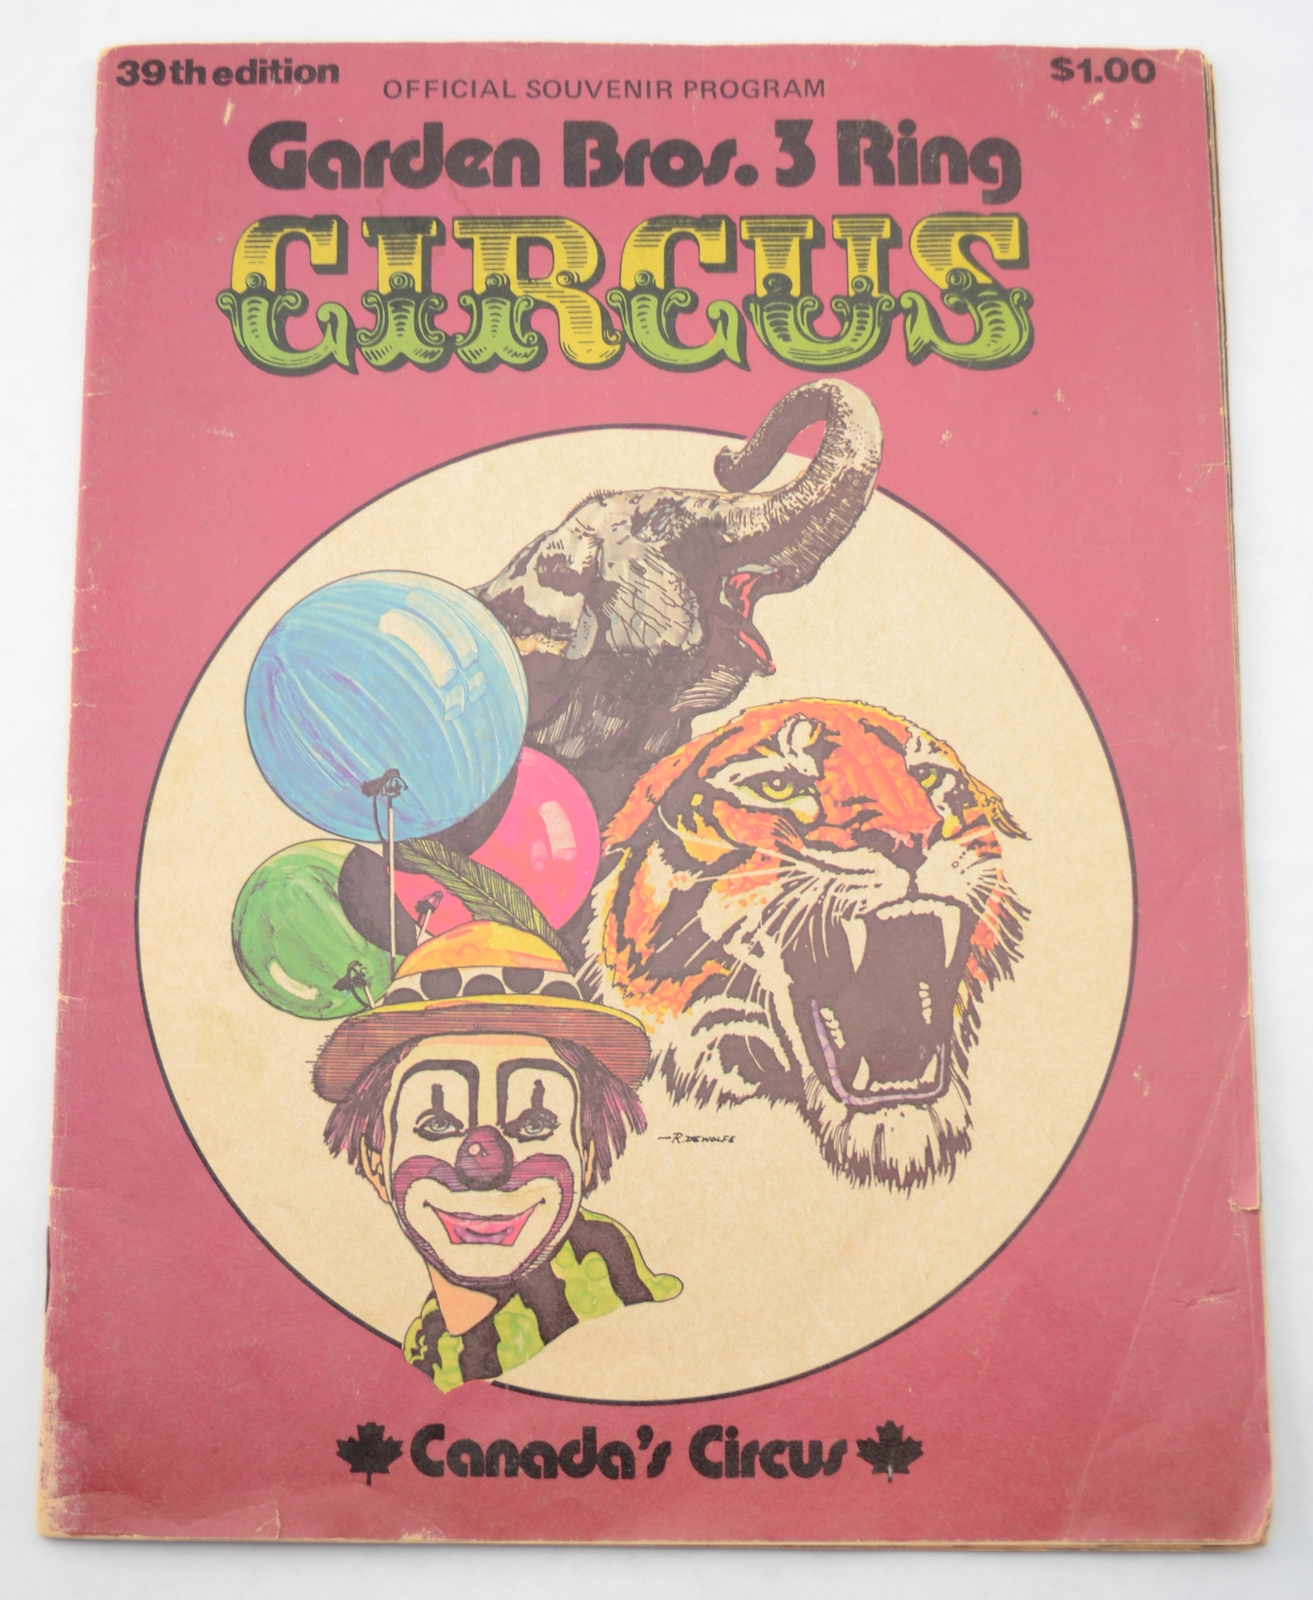 Garden Bros 3 Ring Circus Canada 39 S 39th Edition Program Vintage Advertising Programs Posters